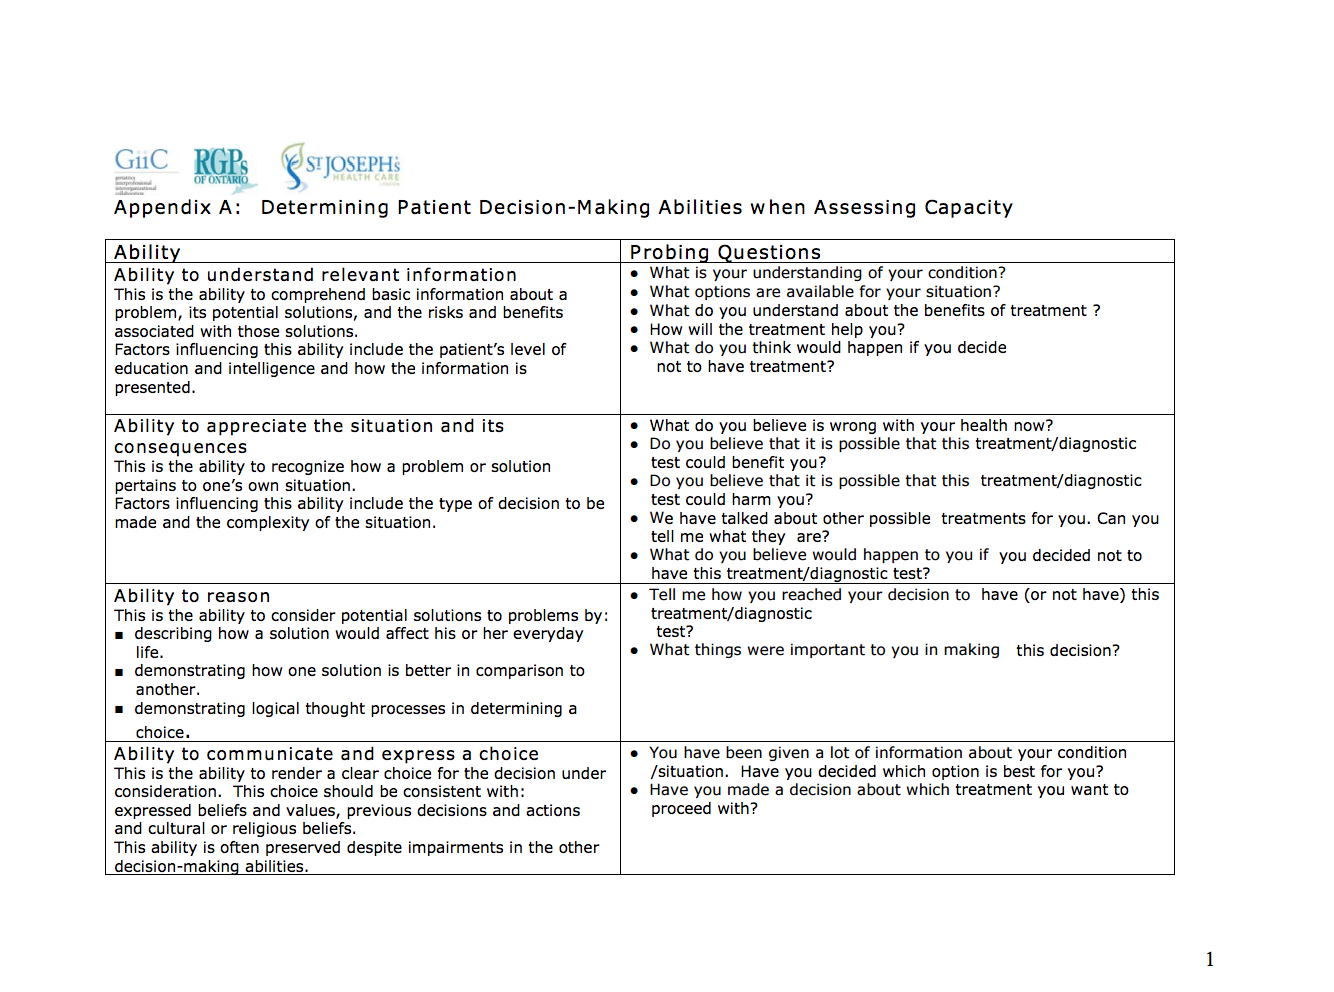 Determining Patient Decision Making Abilities when Assessing Capacity